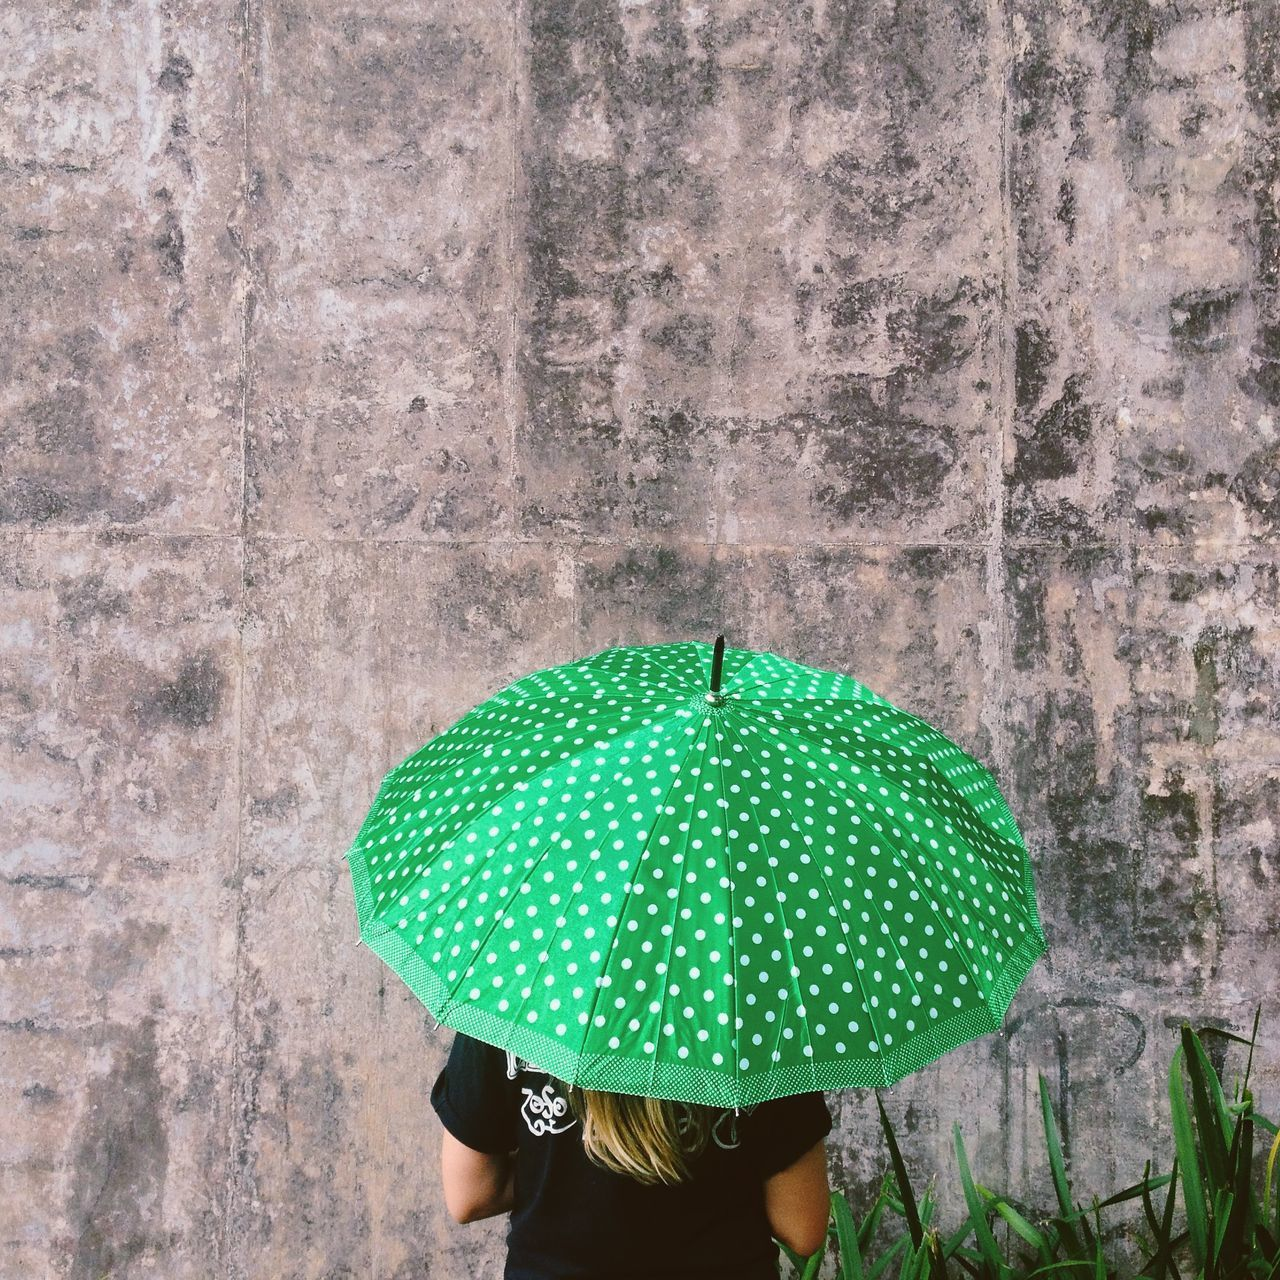 Green Umbrella Concrete Wall Adapted To The City Adult Adults Only Close-up Concrete Day Green Color Nature One Person Outdoors People Real People Umbrella